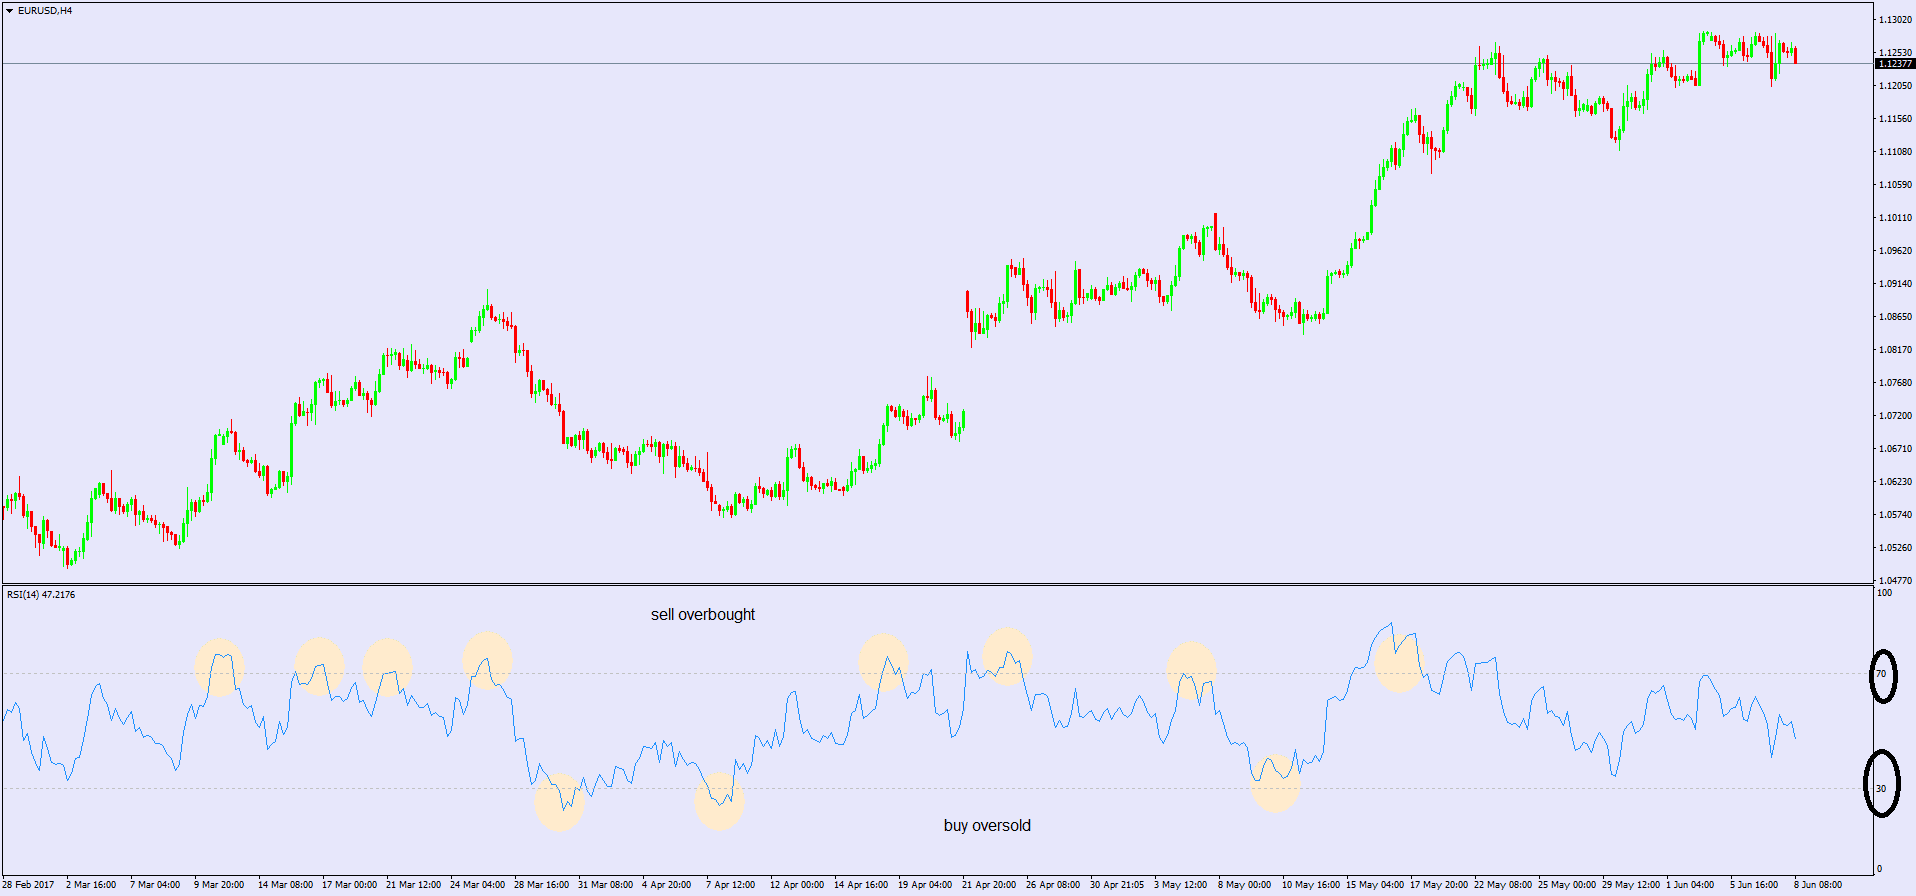 rsi indicator buy and sell signals